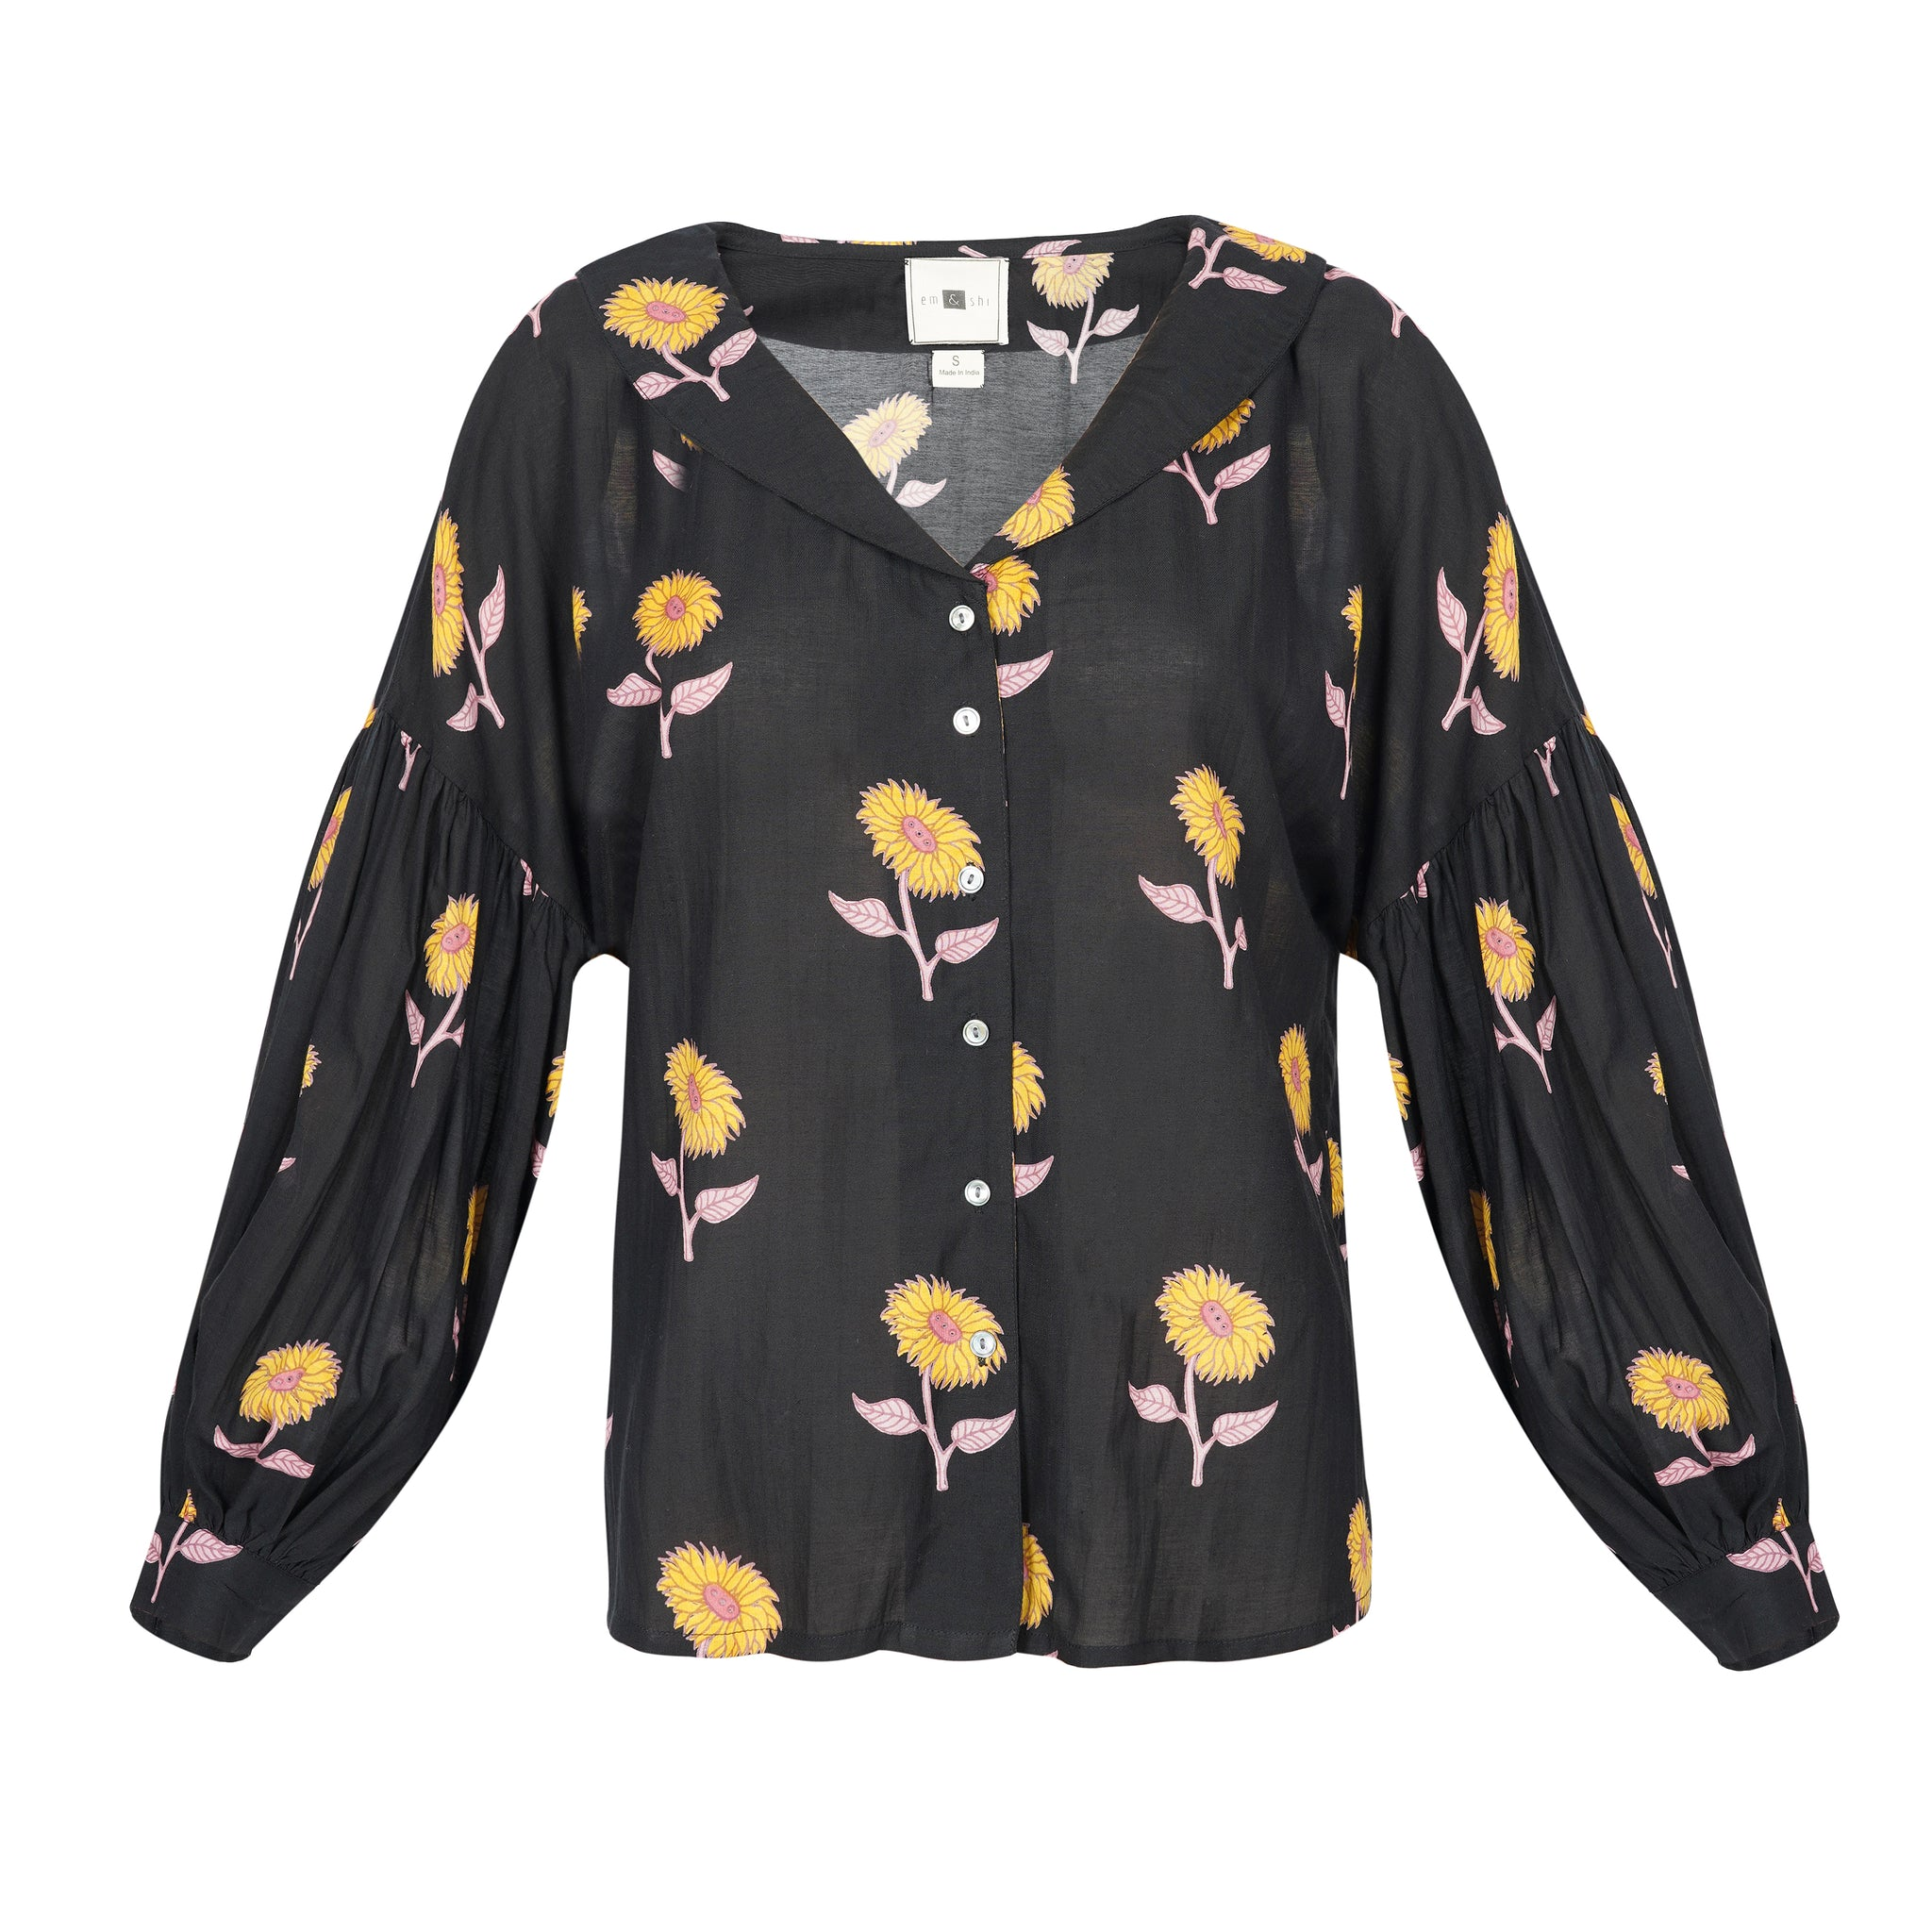 Sunflower Collared Top